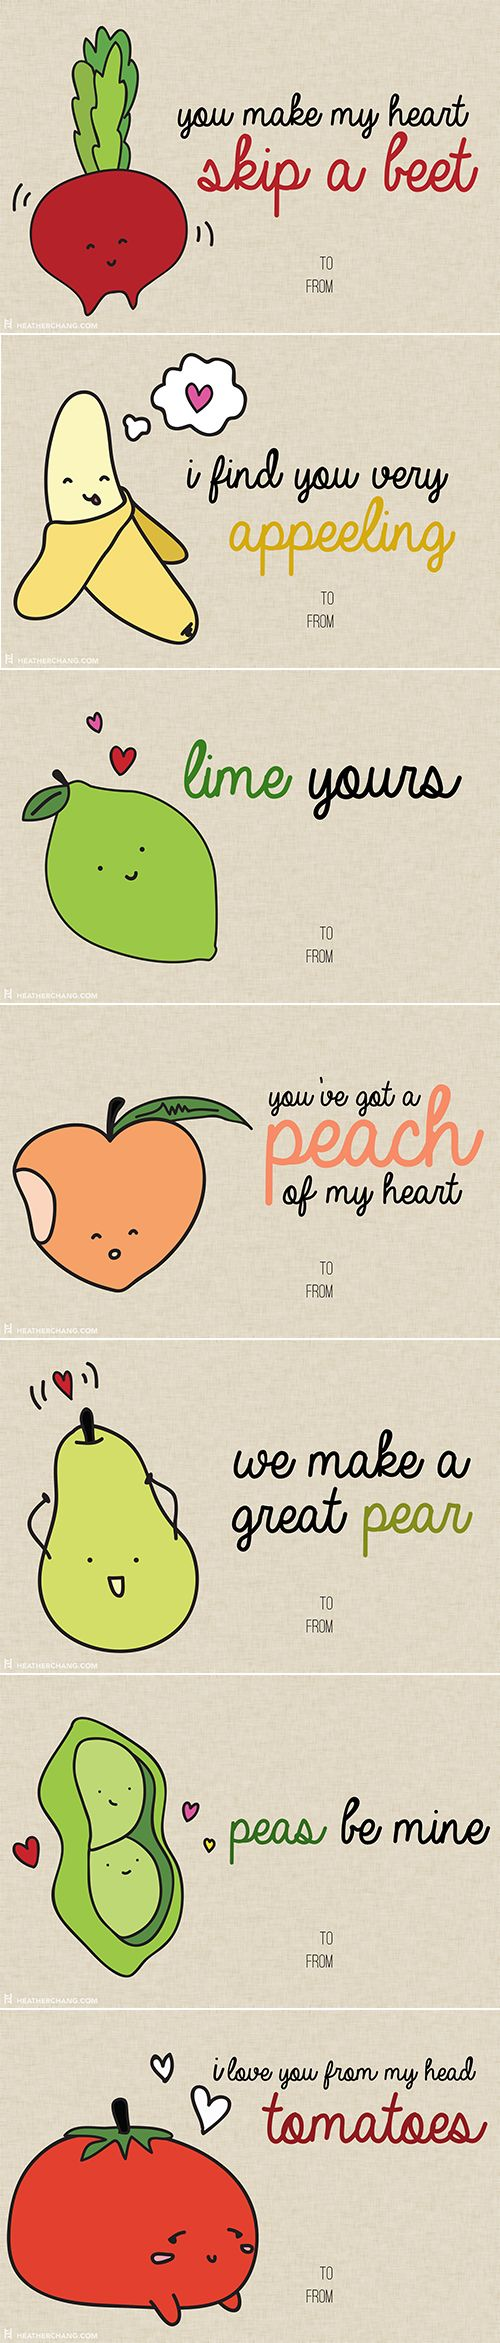 10 Printable V Day Cards With Food Puns So Bad They Re Almost Good